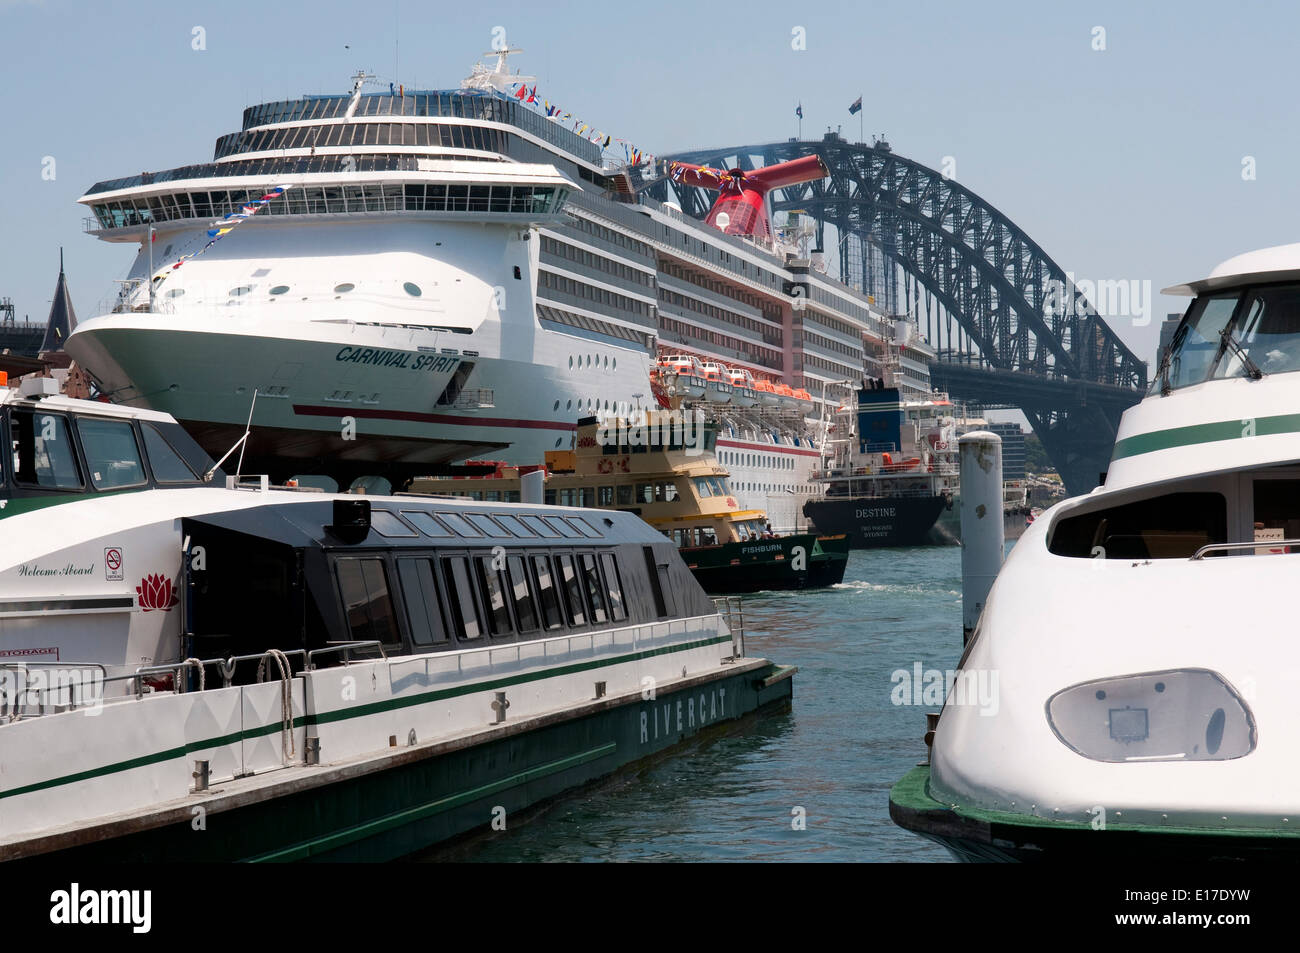 The cruise liner Carnival Spirit berthed in front of Sydney Harbour Bridge, New South Wales, Australia. Stock Photo